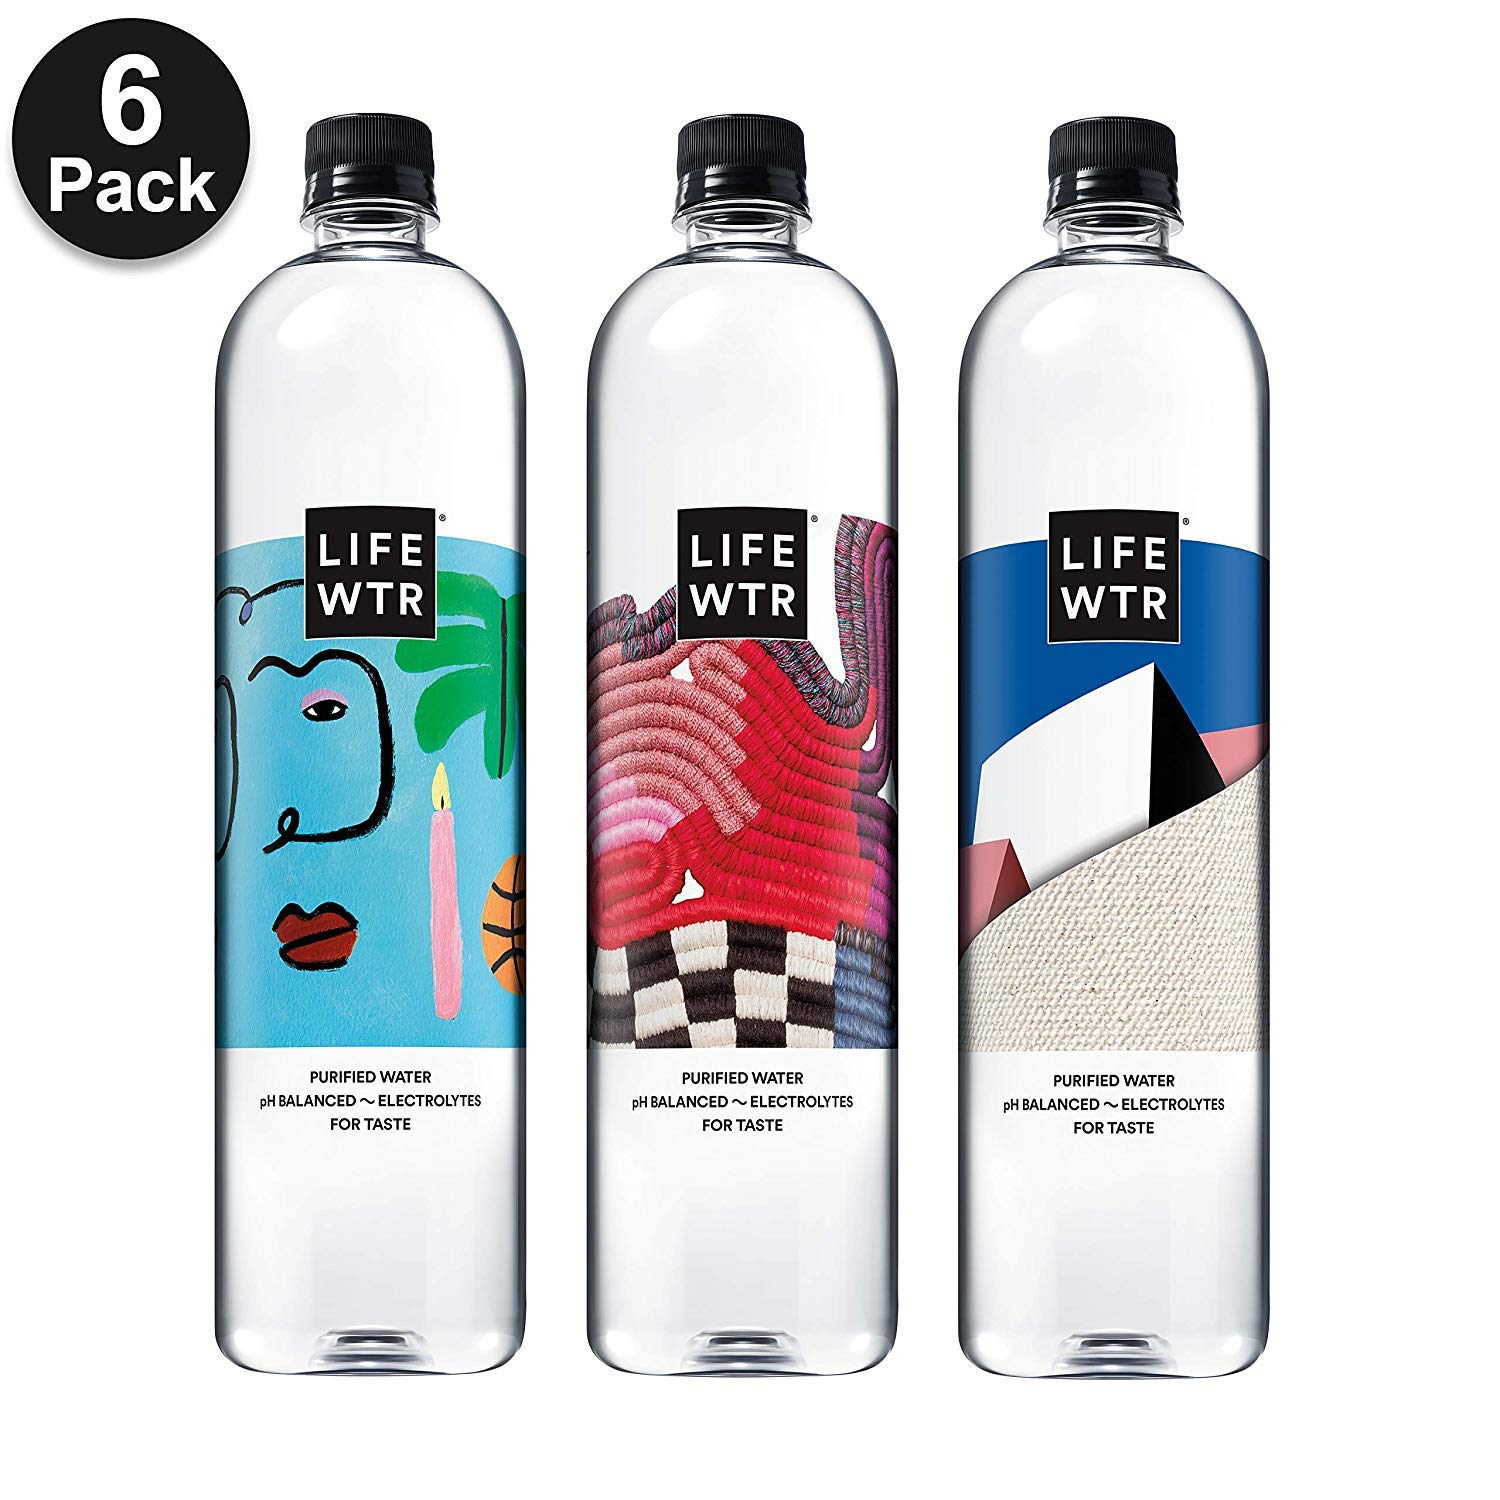 LIFEWTR, Premium Purified Water, pH Balanced with Electrolytes For Taste, 1000 mL (6 Count) (Packaging May Vary) (24 Count) by LIFEWTR